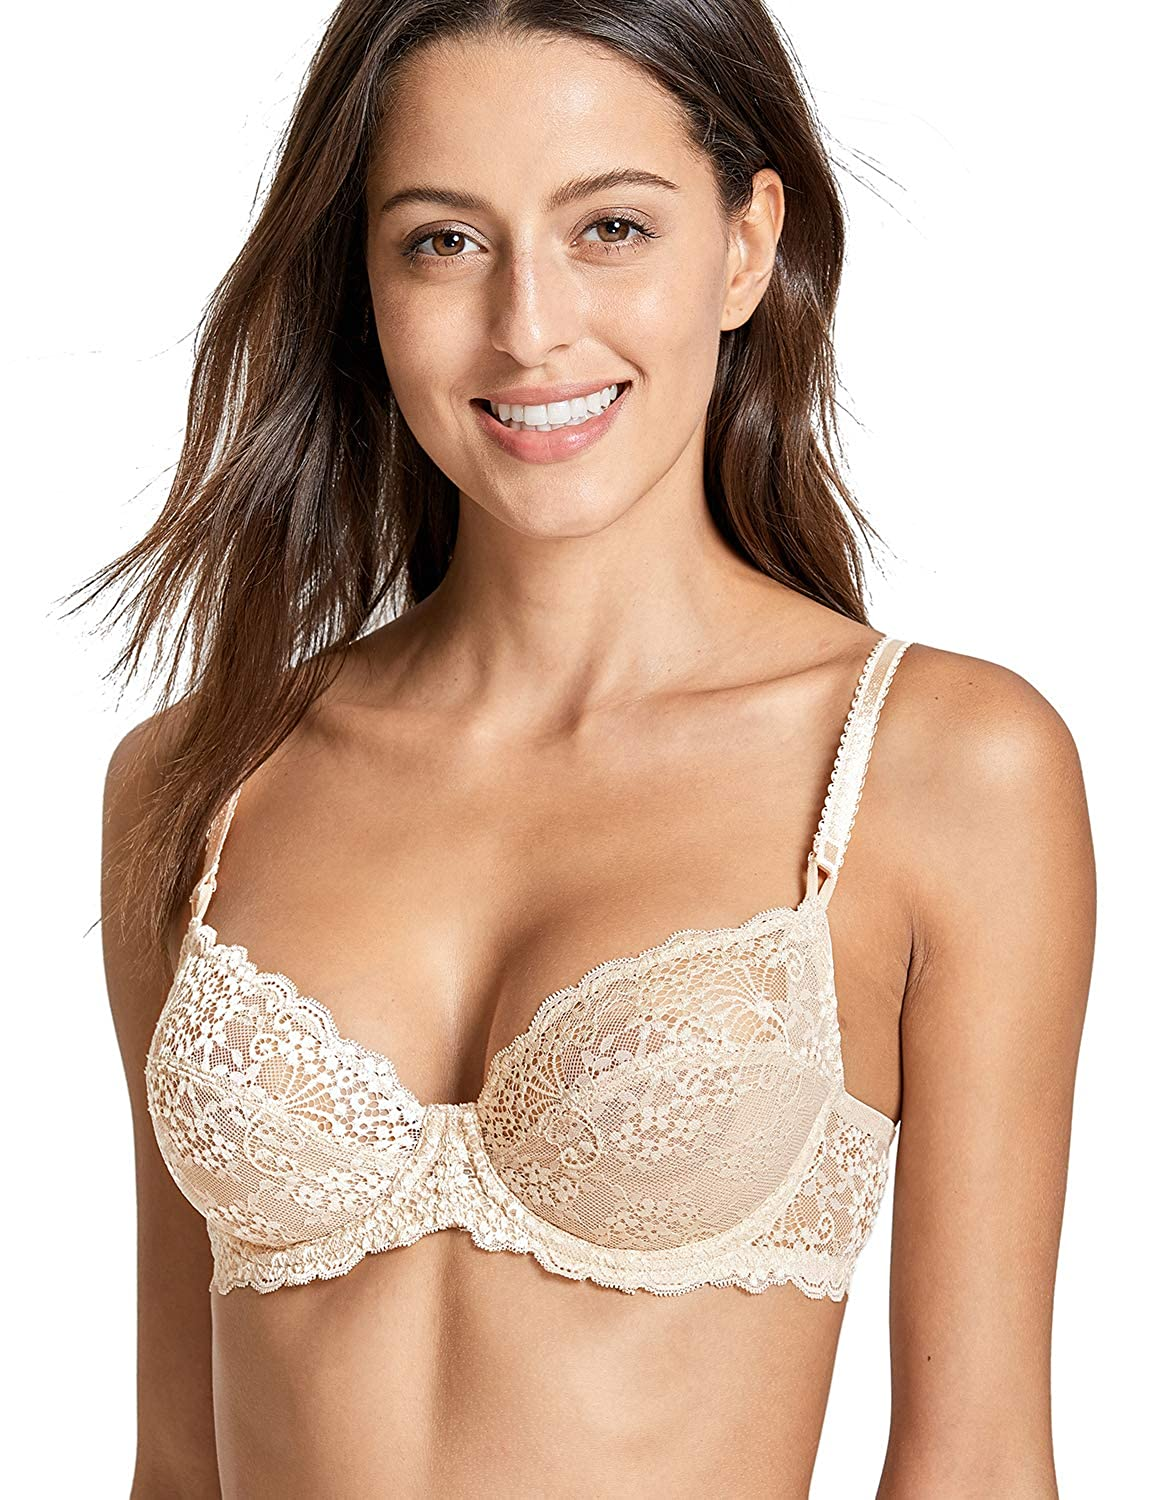 Delimira Women's Underwired Non Padding Floral Lace Breathable Balconette Bra